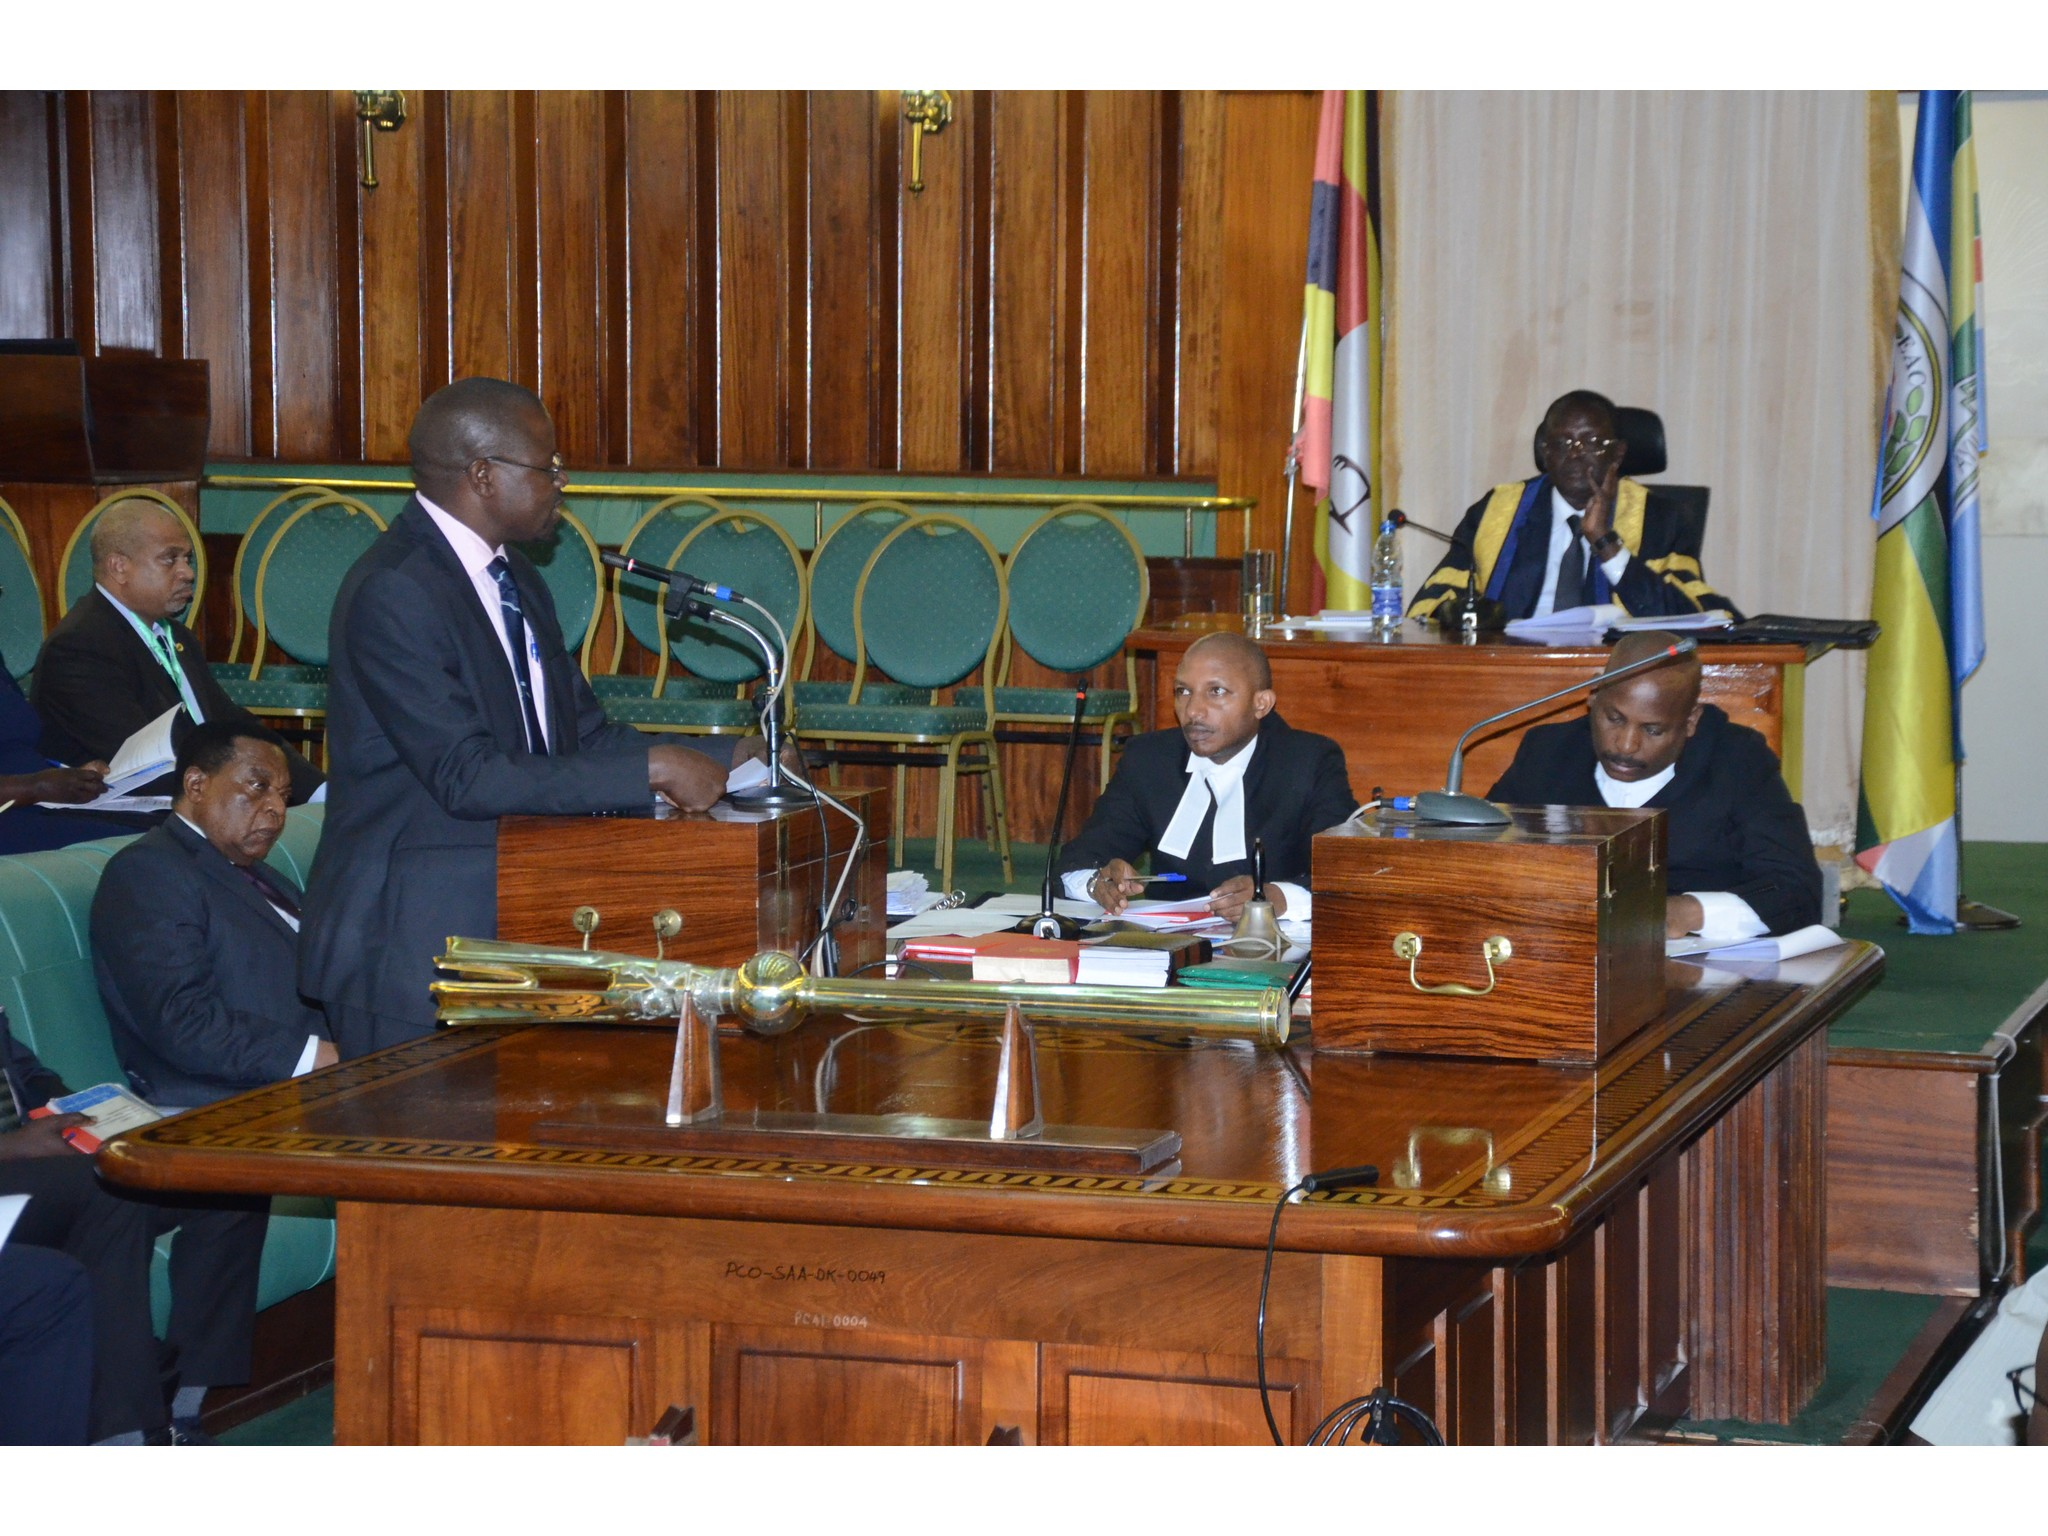 The Chair of Council of Ministers and Minister for State, EAC Affairs, Uganda, Hon Julius Wandera Maganda on the floor of the House